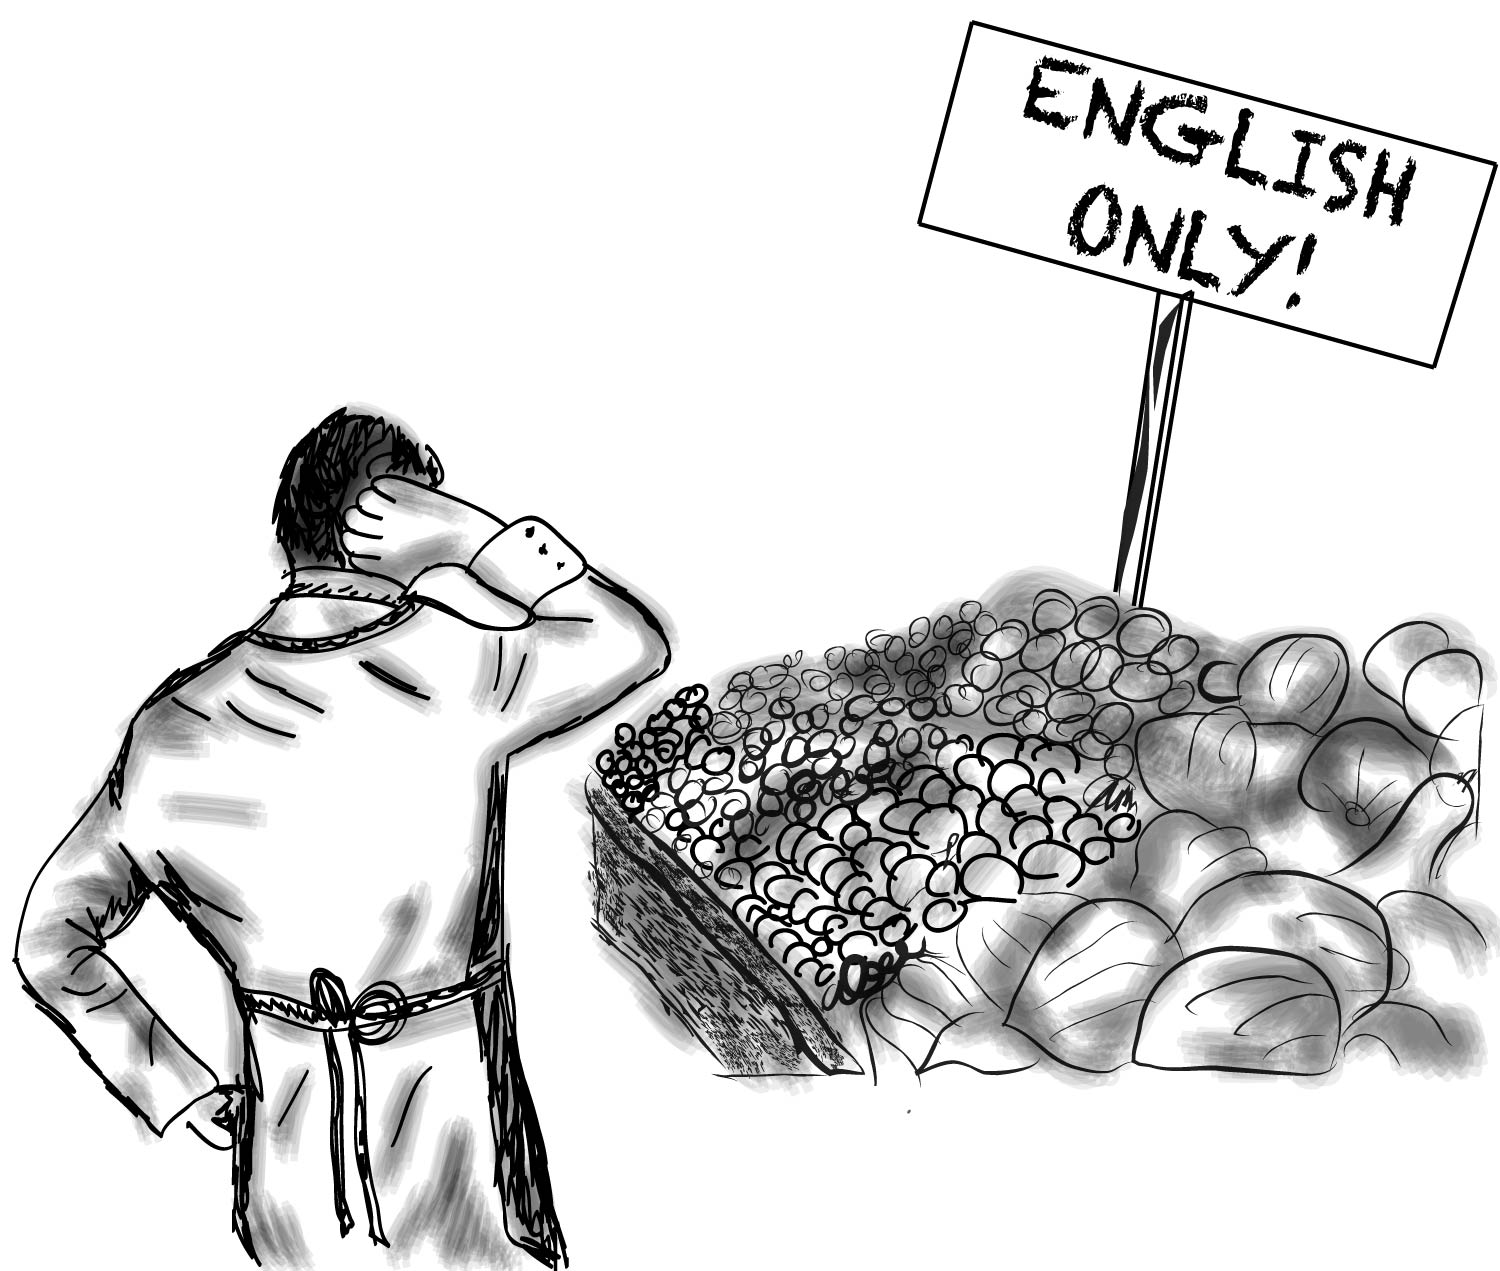 english only rules in the workplace Because a blanket english-only rule at work is burdensome and potentially discriminates against employees, federal employment law has set tough standards for employers to follow when implementing english-only language rules in the workplace.